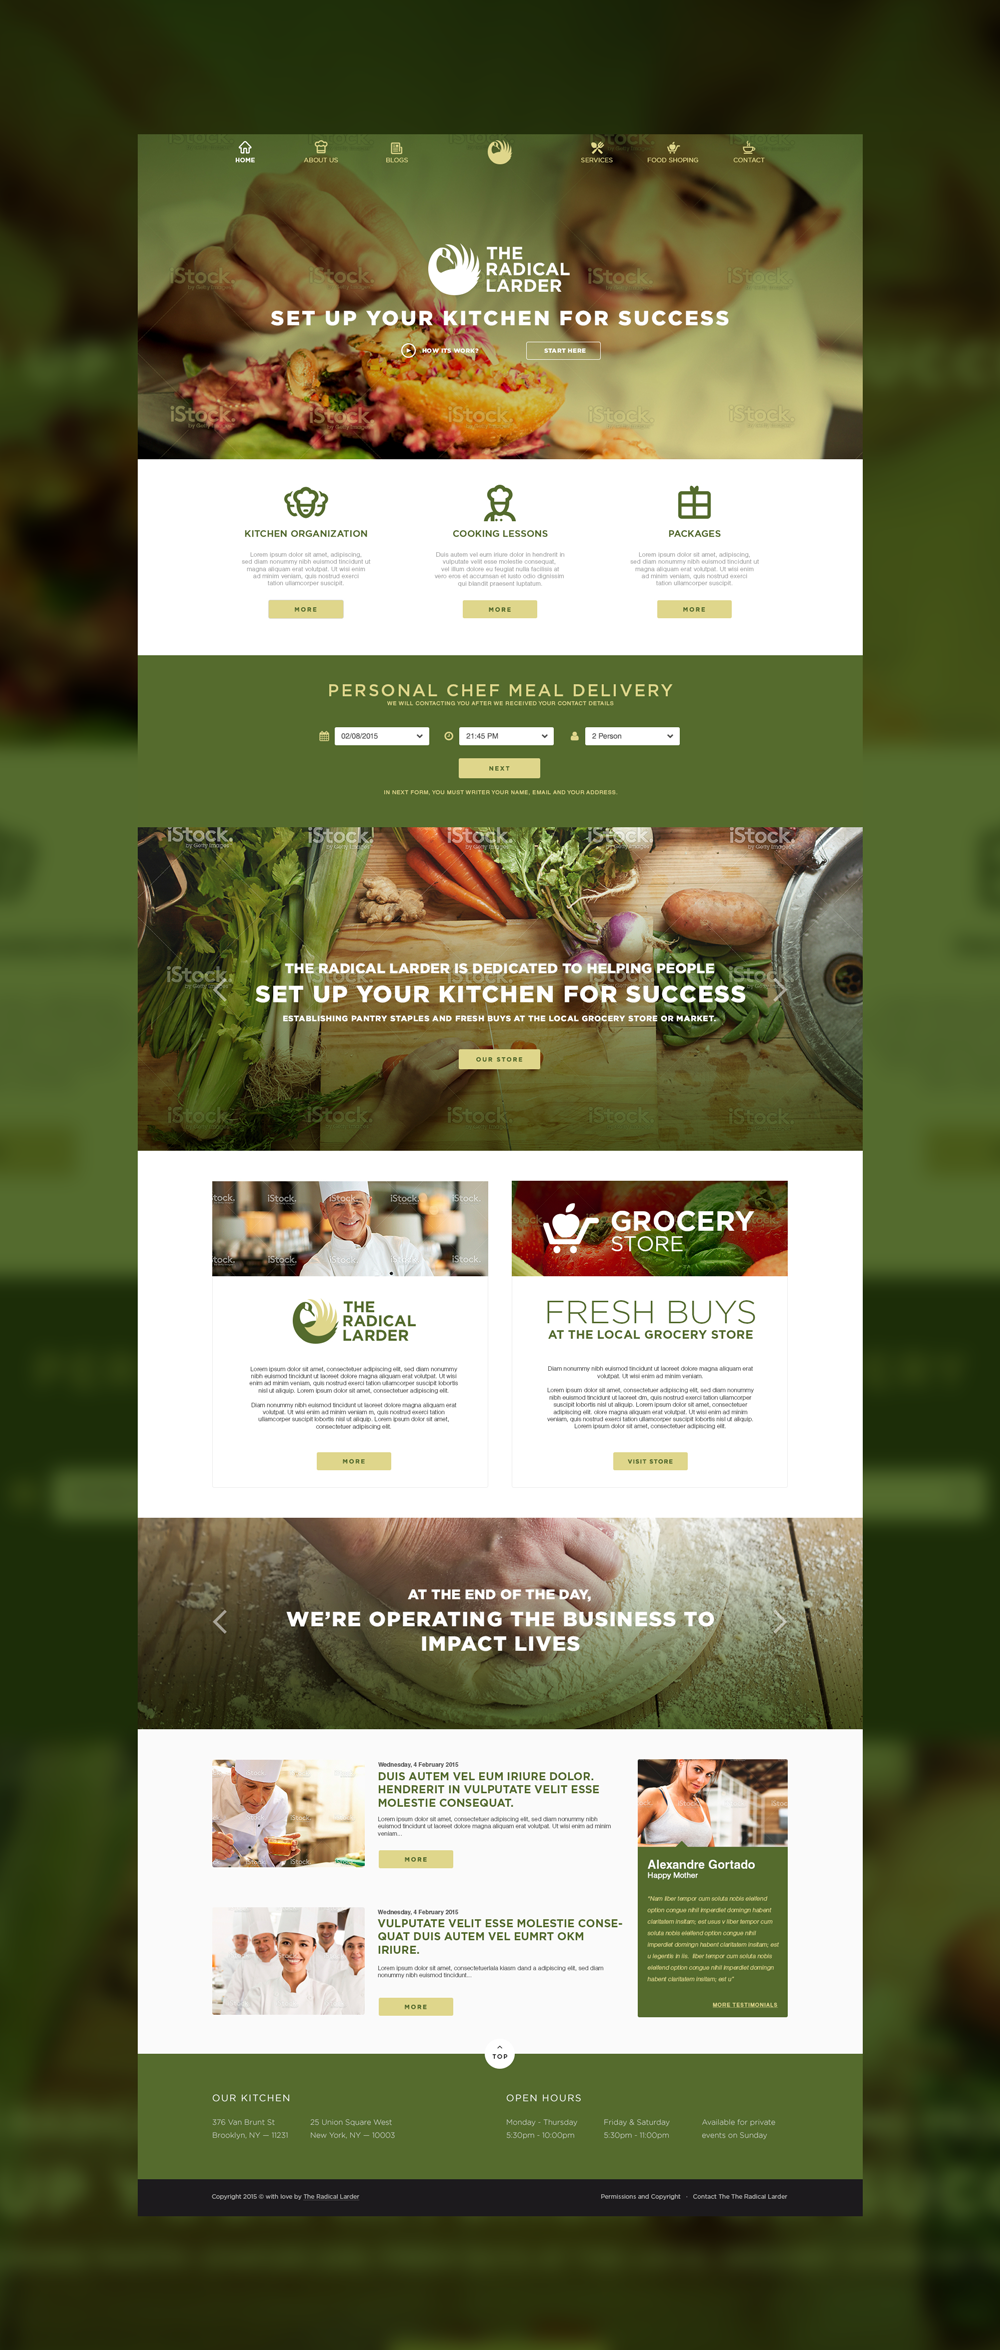 Web Page Design by Private User - Entry No. 91 in the Web Page Design Contest The Radical Larder Web Page Design.